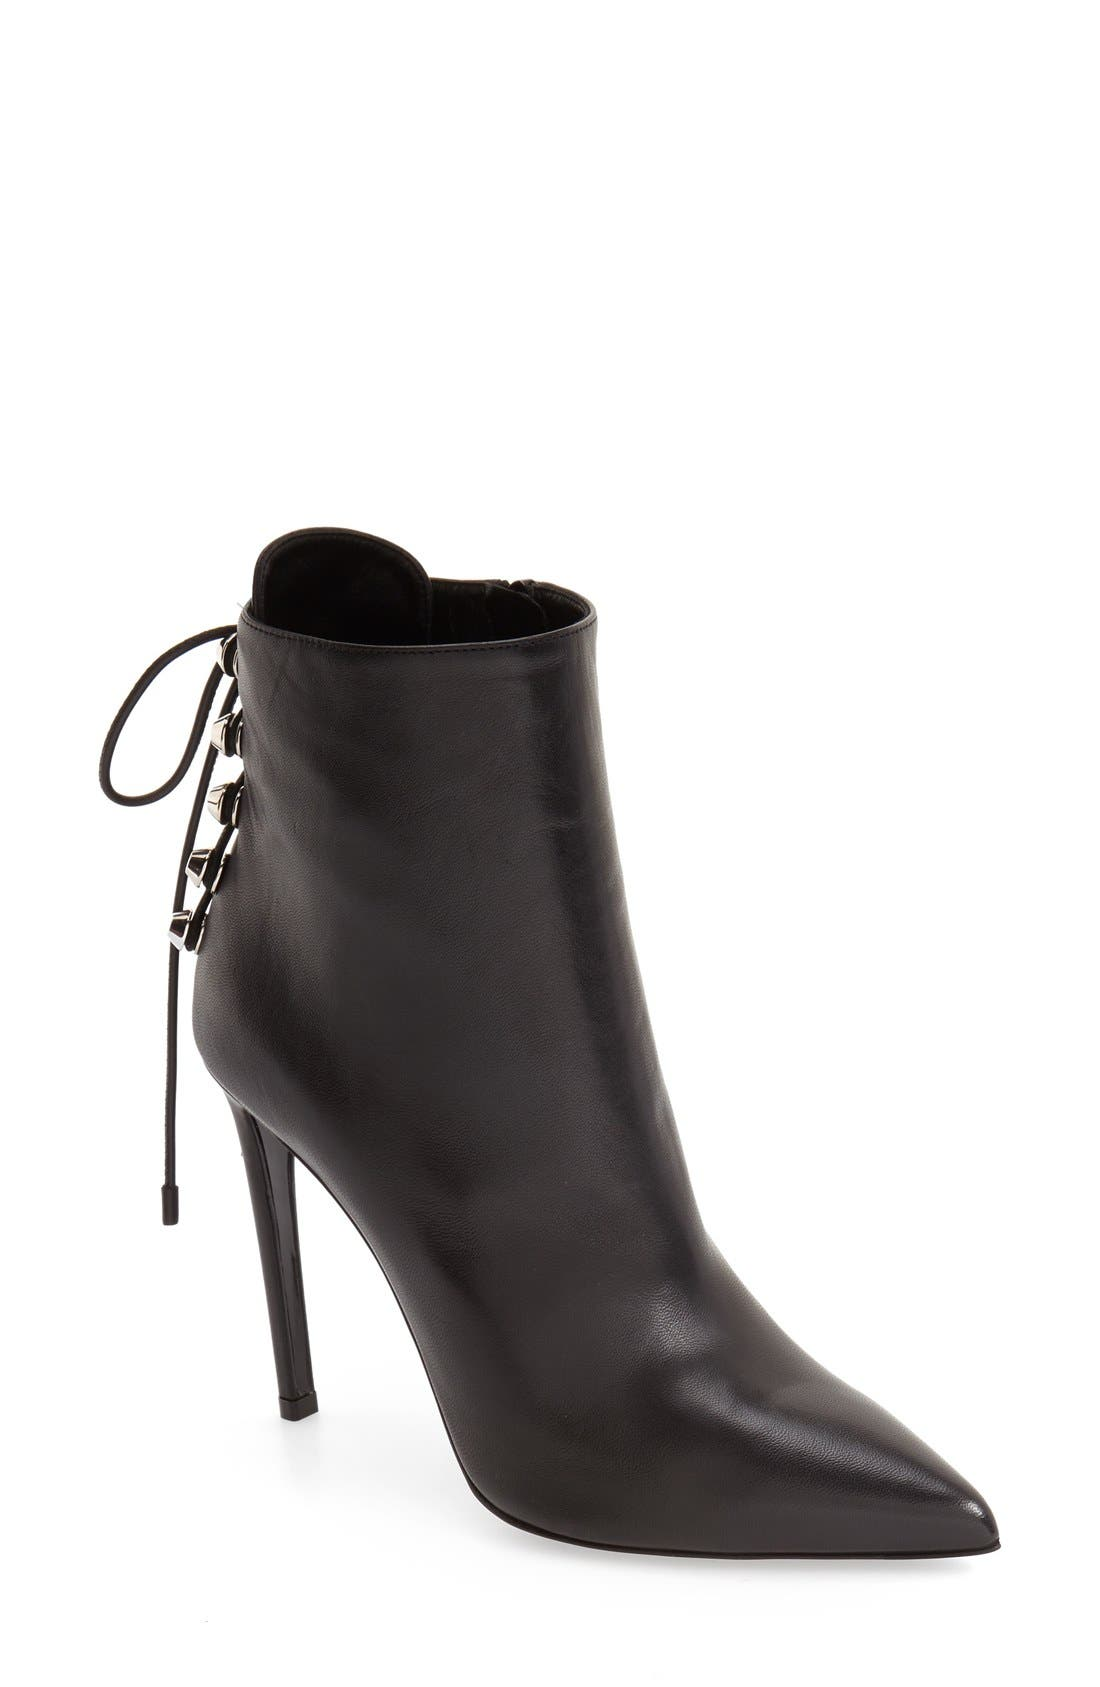 Main Image - Balenciaga Lace-Up Back Pointy Toe Bootie (Women)